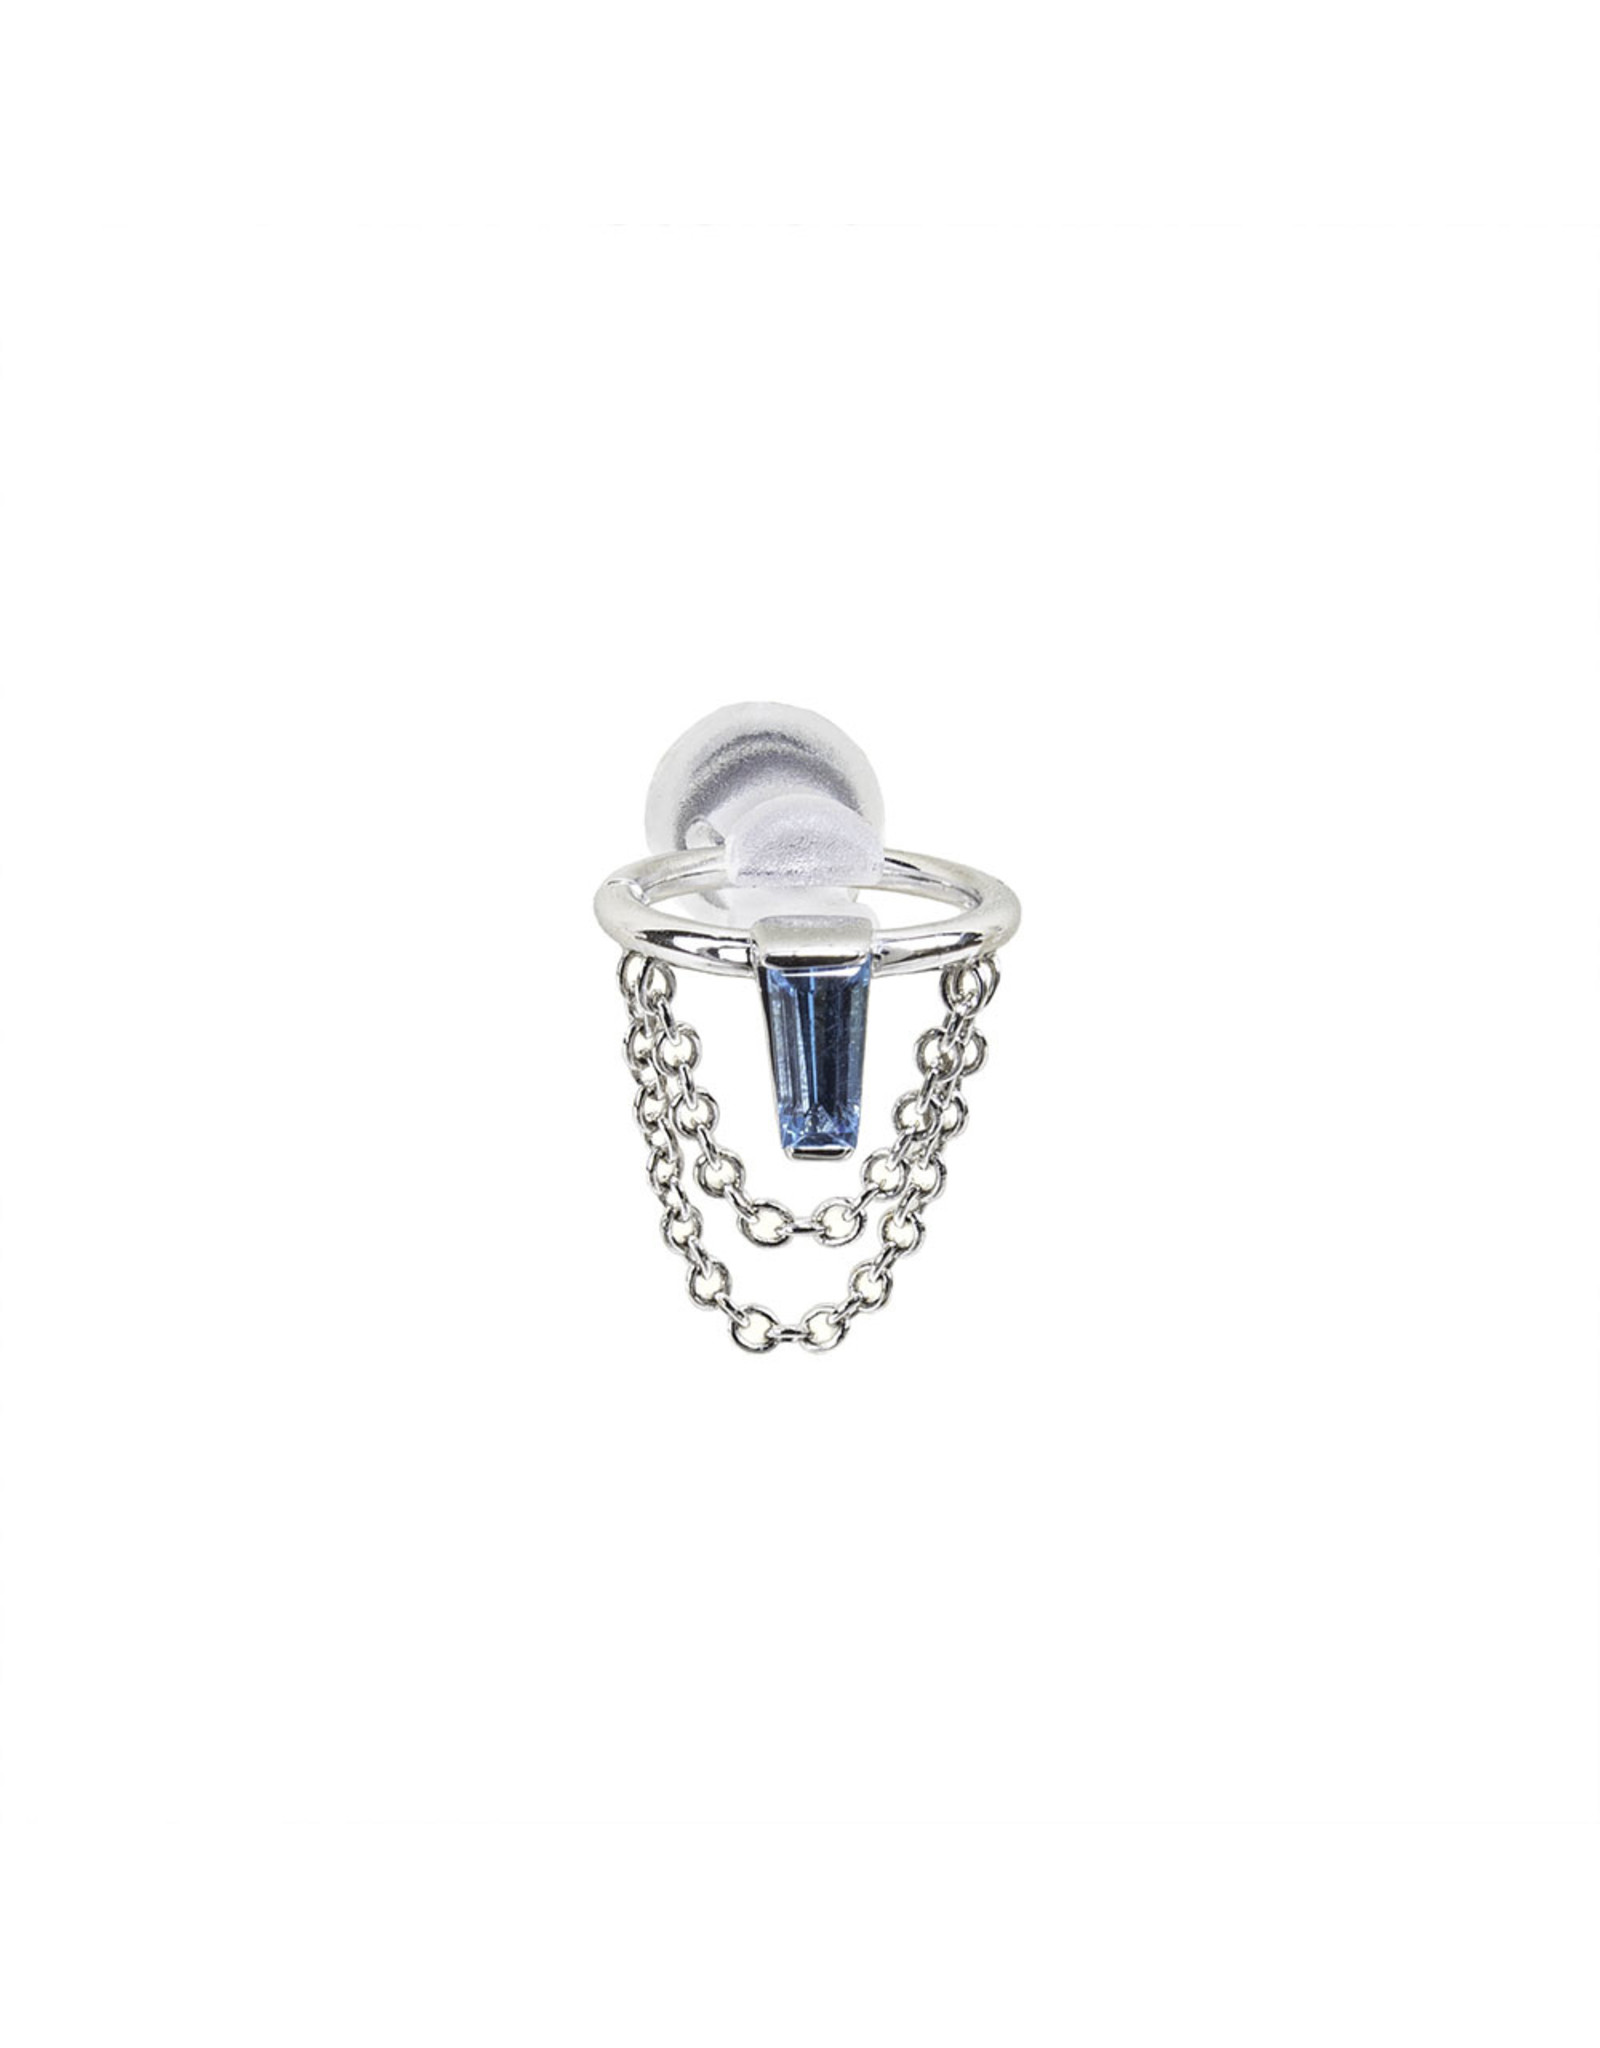 """BVLA BVLA 18g 9/32 white gold """"Sunday!"""" seam ring with 4x2x1 Swiss Blue Topaz baguette and cable chain"""